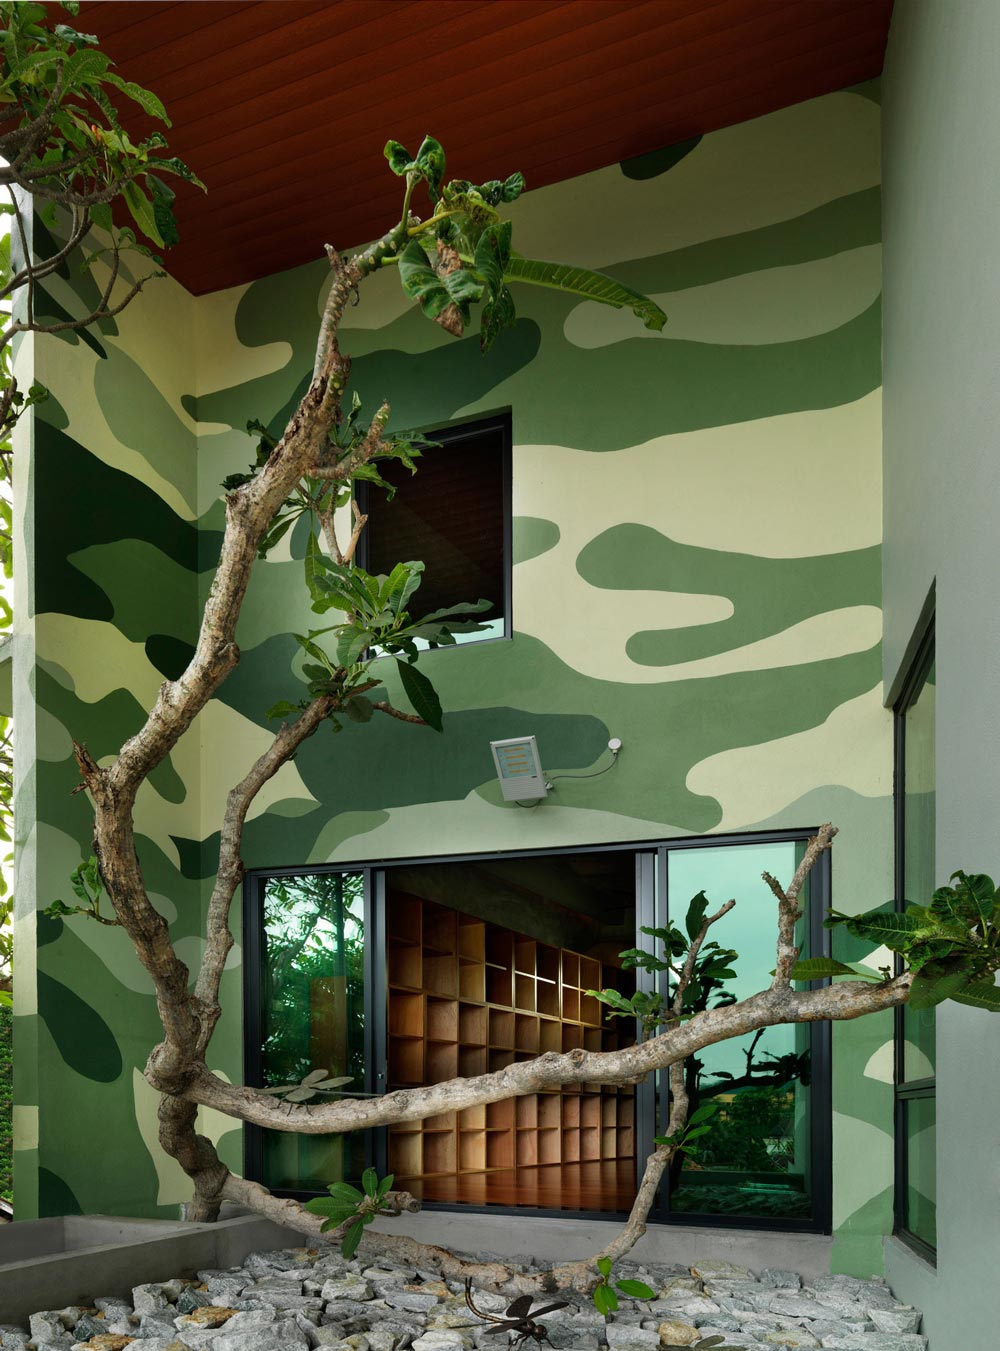 Patio Doors, S11 House in Selangor, Malaysia by ArchiCentre